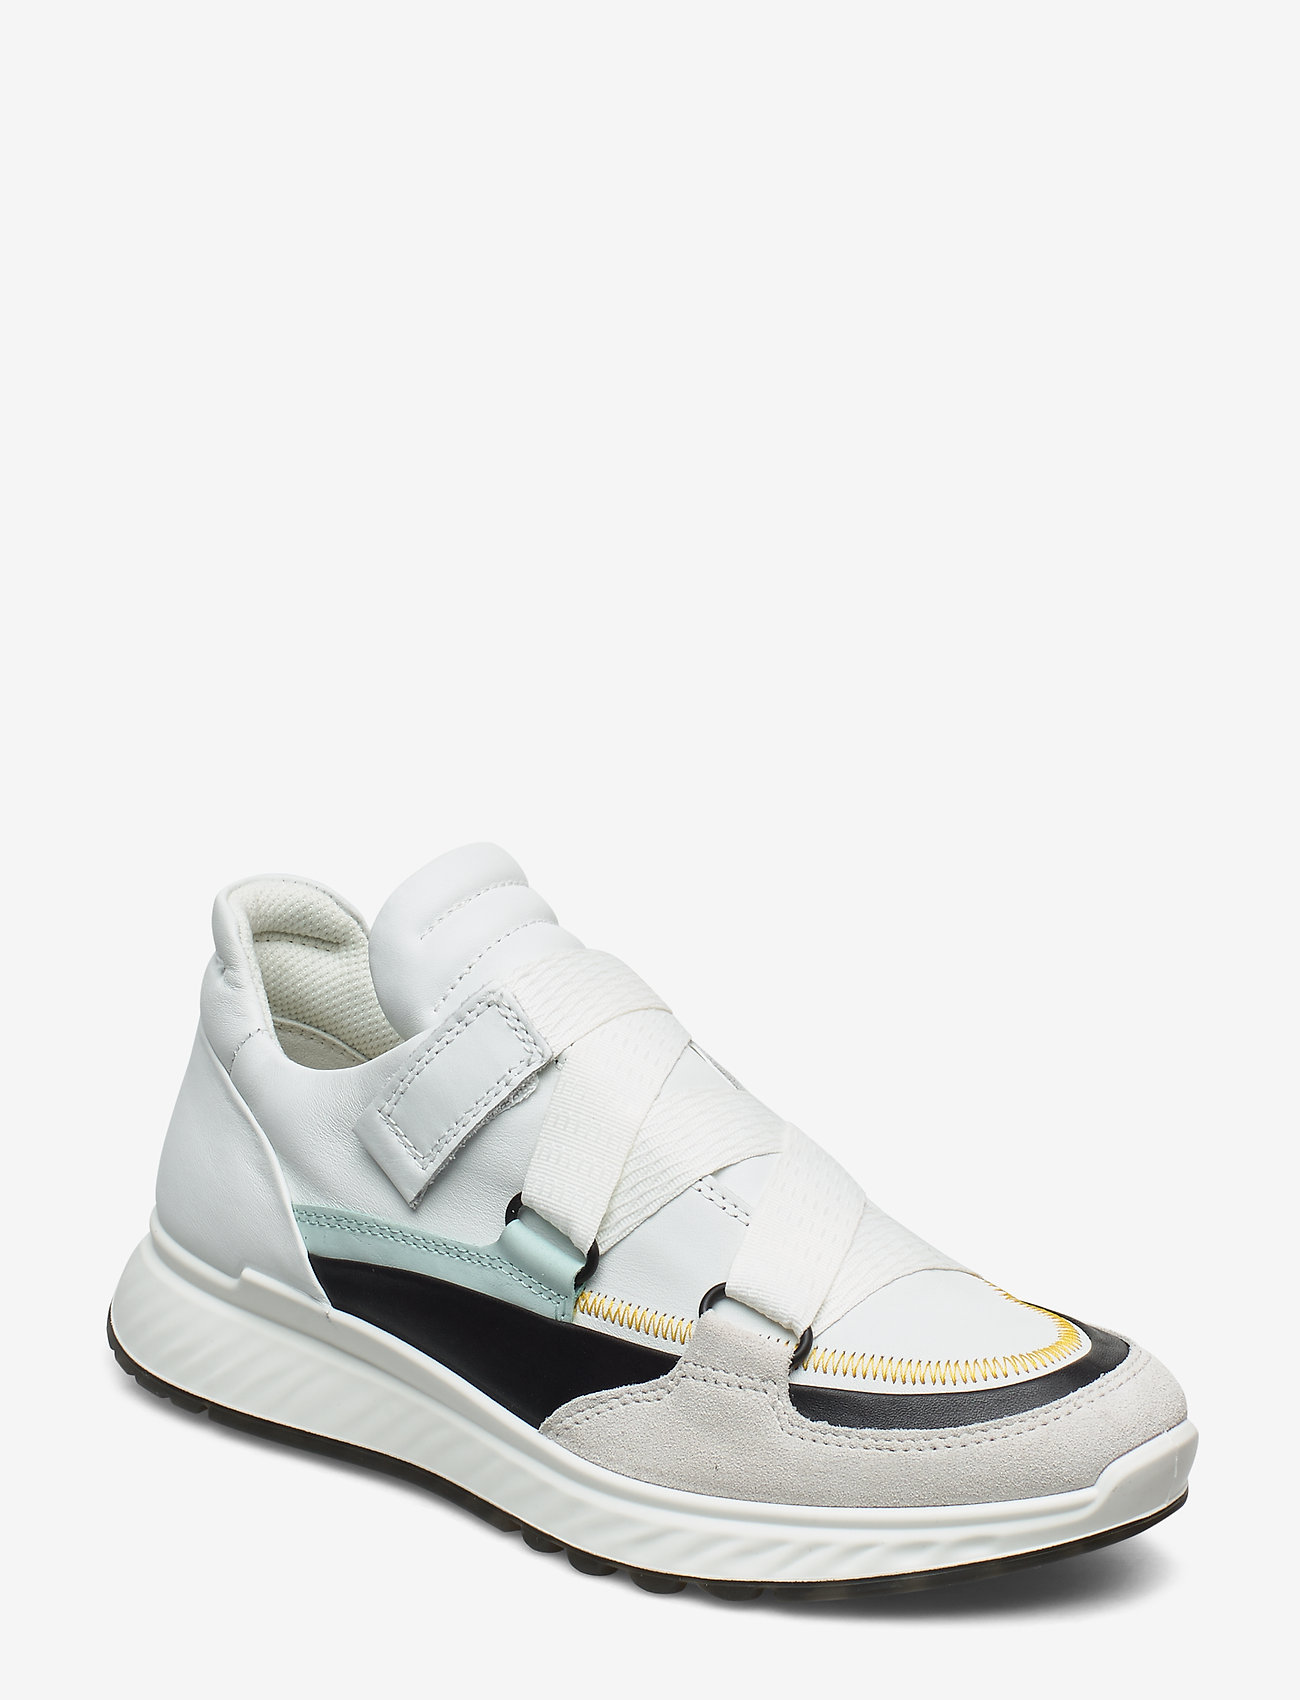 ECCO - ST.1 W - slip-on sneakers - shadow white/black/white/eggshell blue - 0